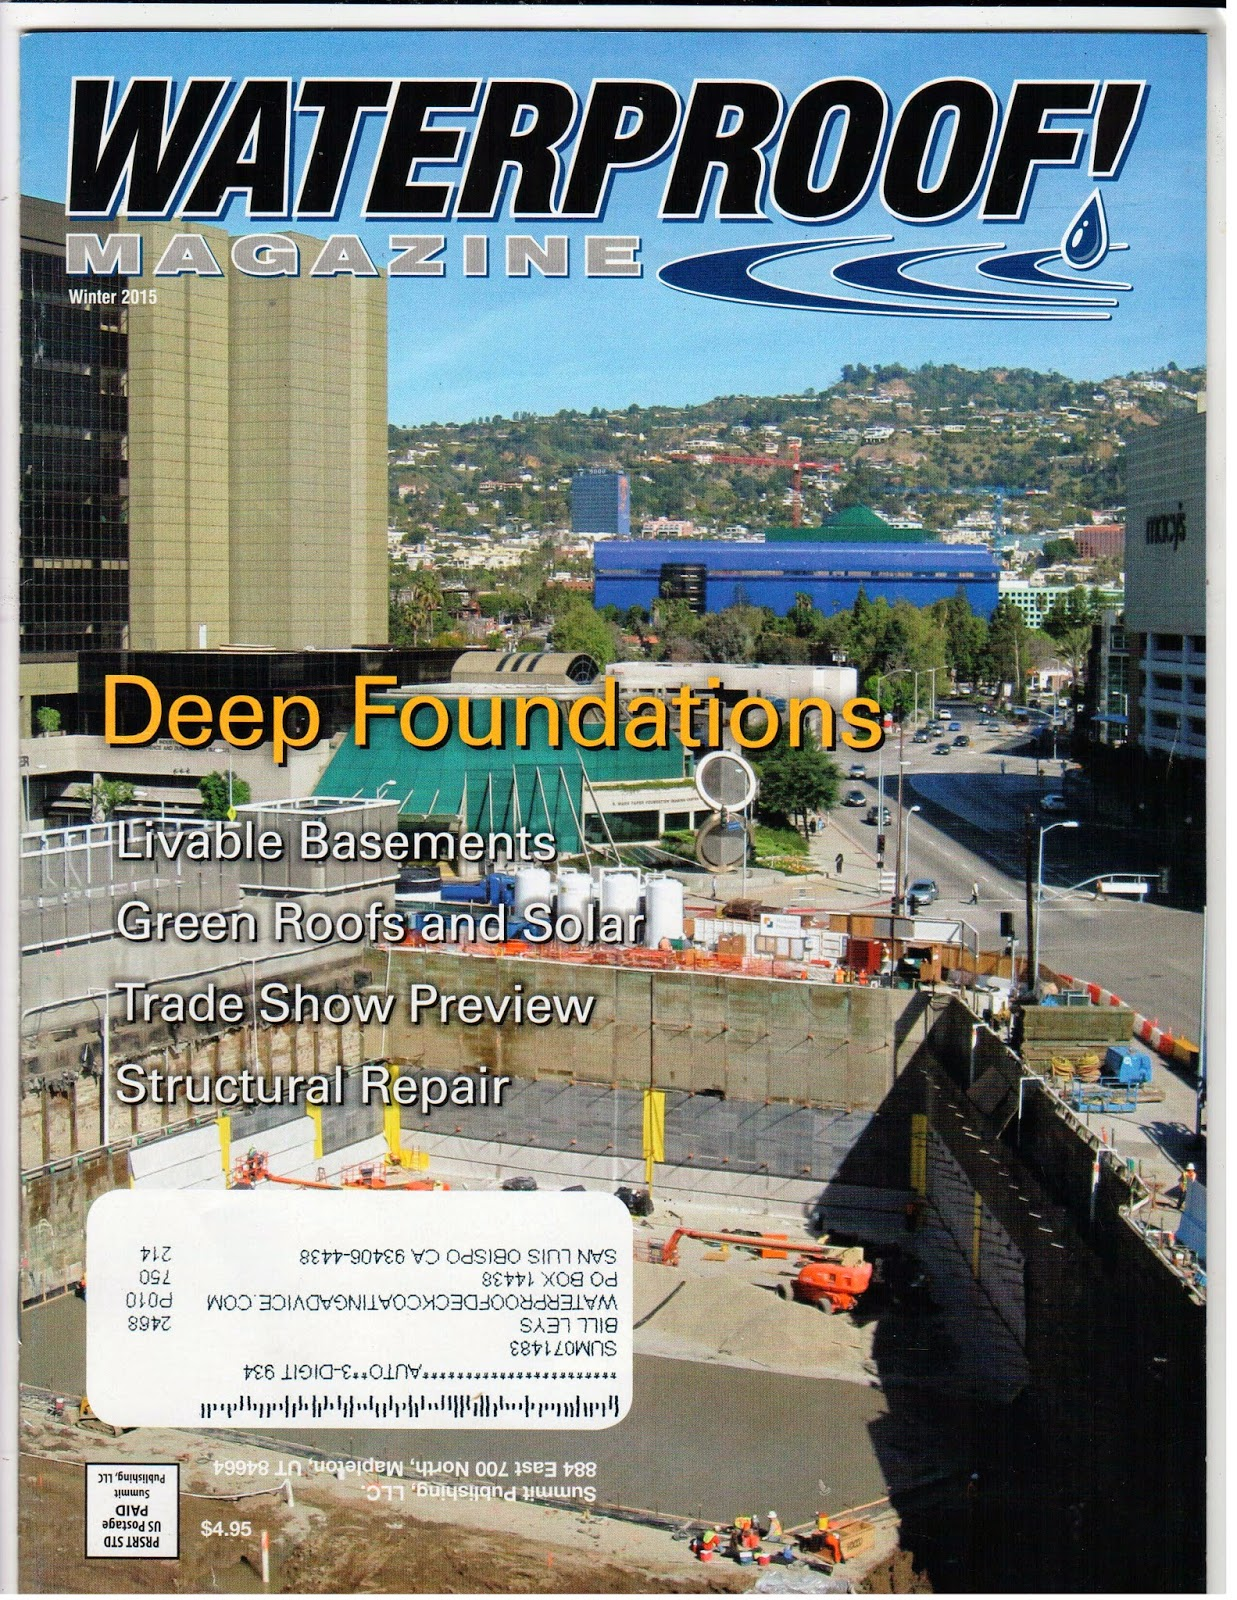 Waterproof! Magazine covers issues, products, jobs and more on waterproofing and decking.